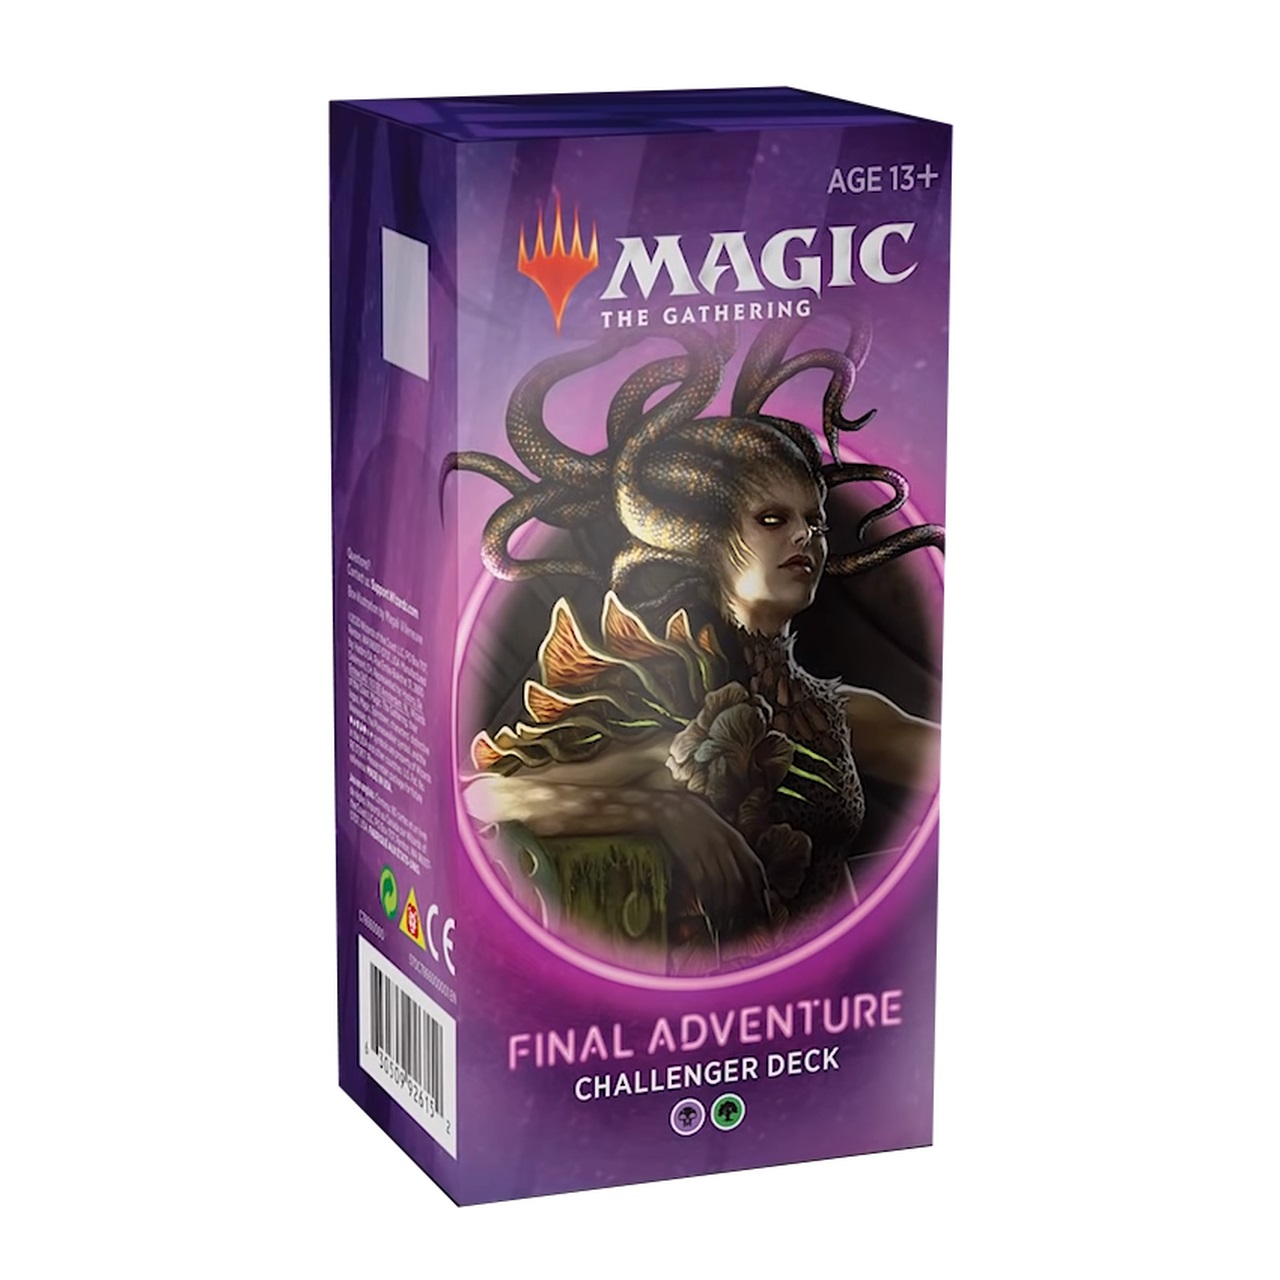 Magic: The Gathering - Final Adventure